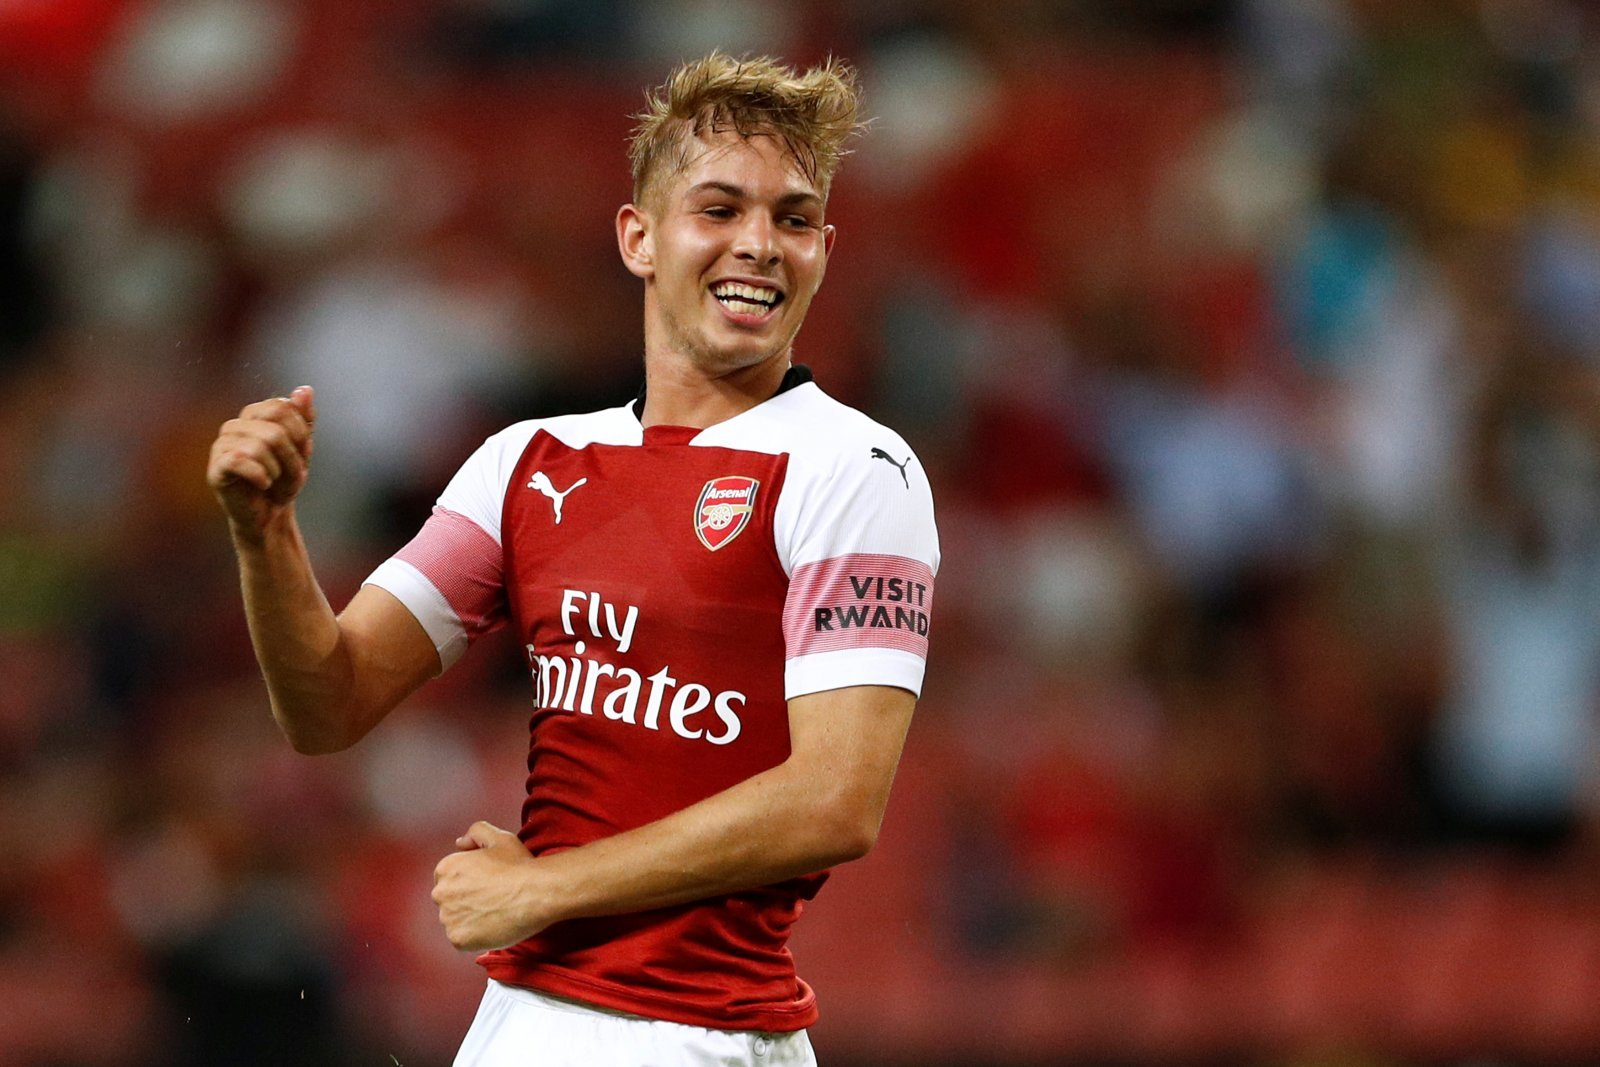 Arsenal fans on Twitter loved these comments from Emile Smith-Rowe